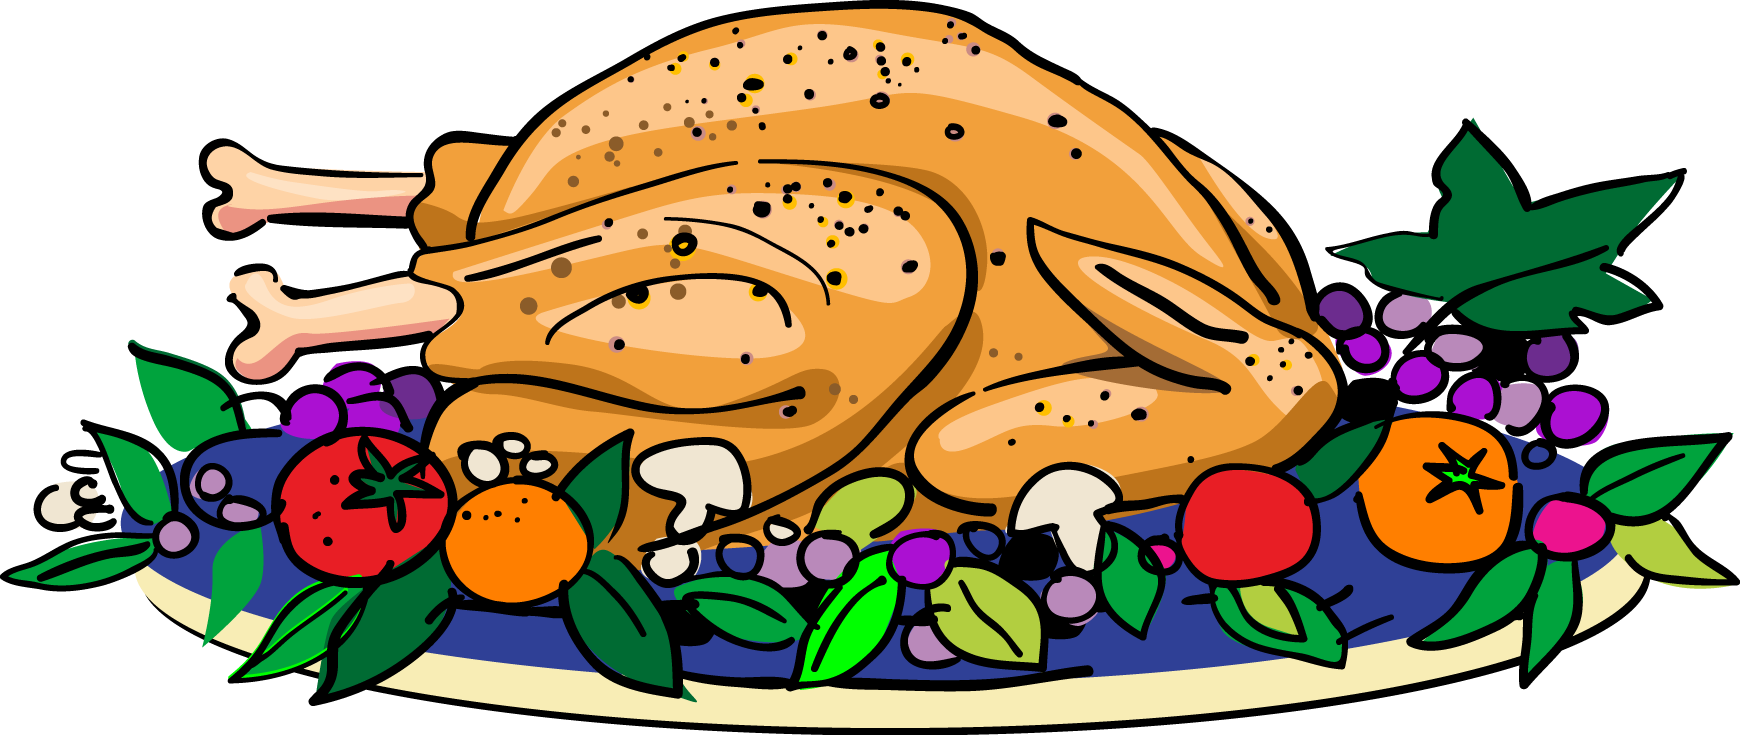 banner transparent library Thanksgiving dinner cilpart unbelievable. Meal clipart home cooked meal.